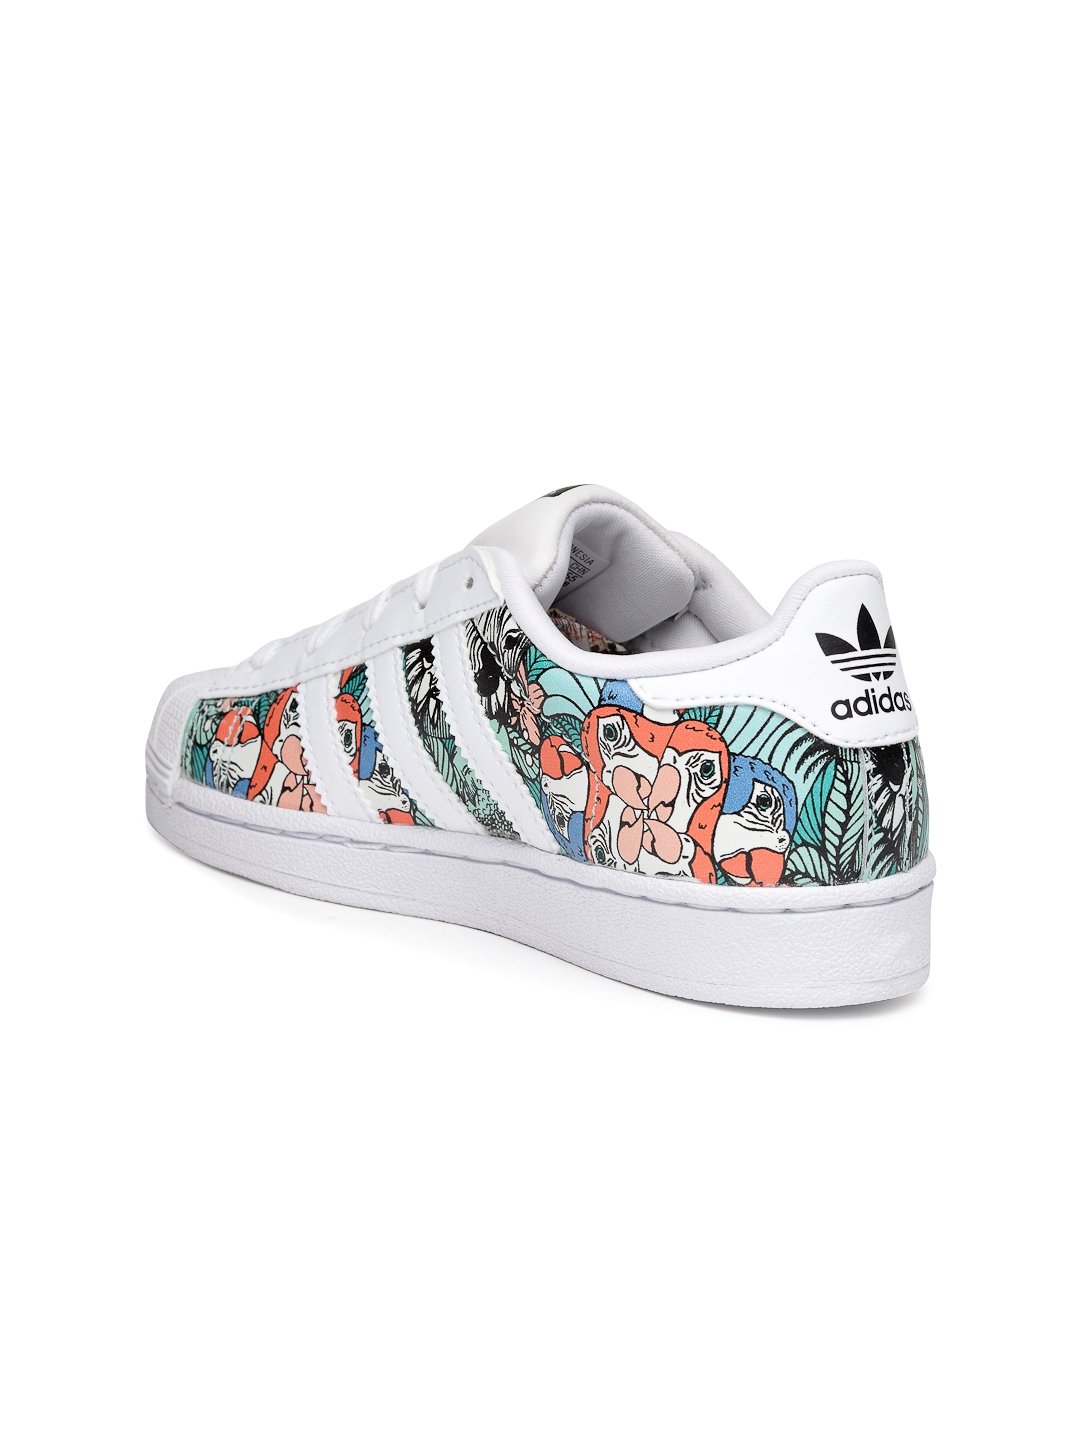 on sale e3abc 44002 ADIDAS Originals Kids White   Green Superstar C Printed Sneakers